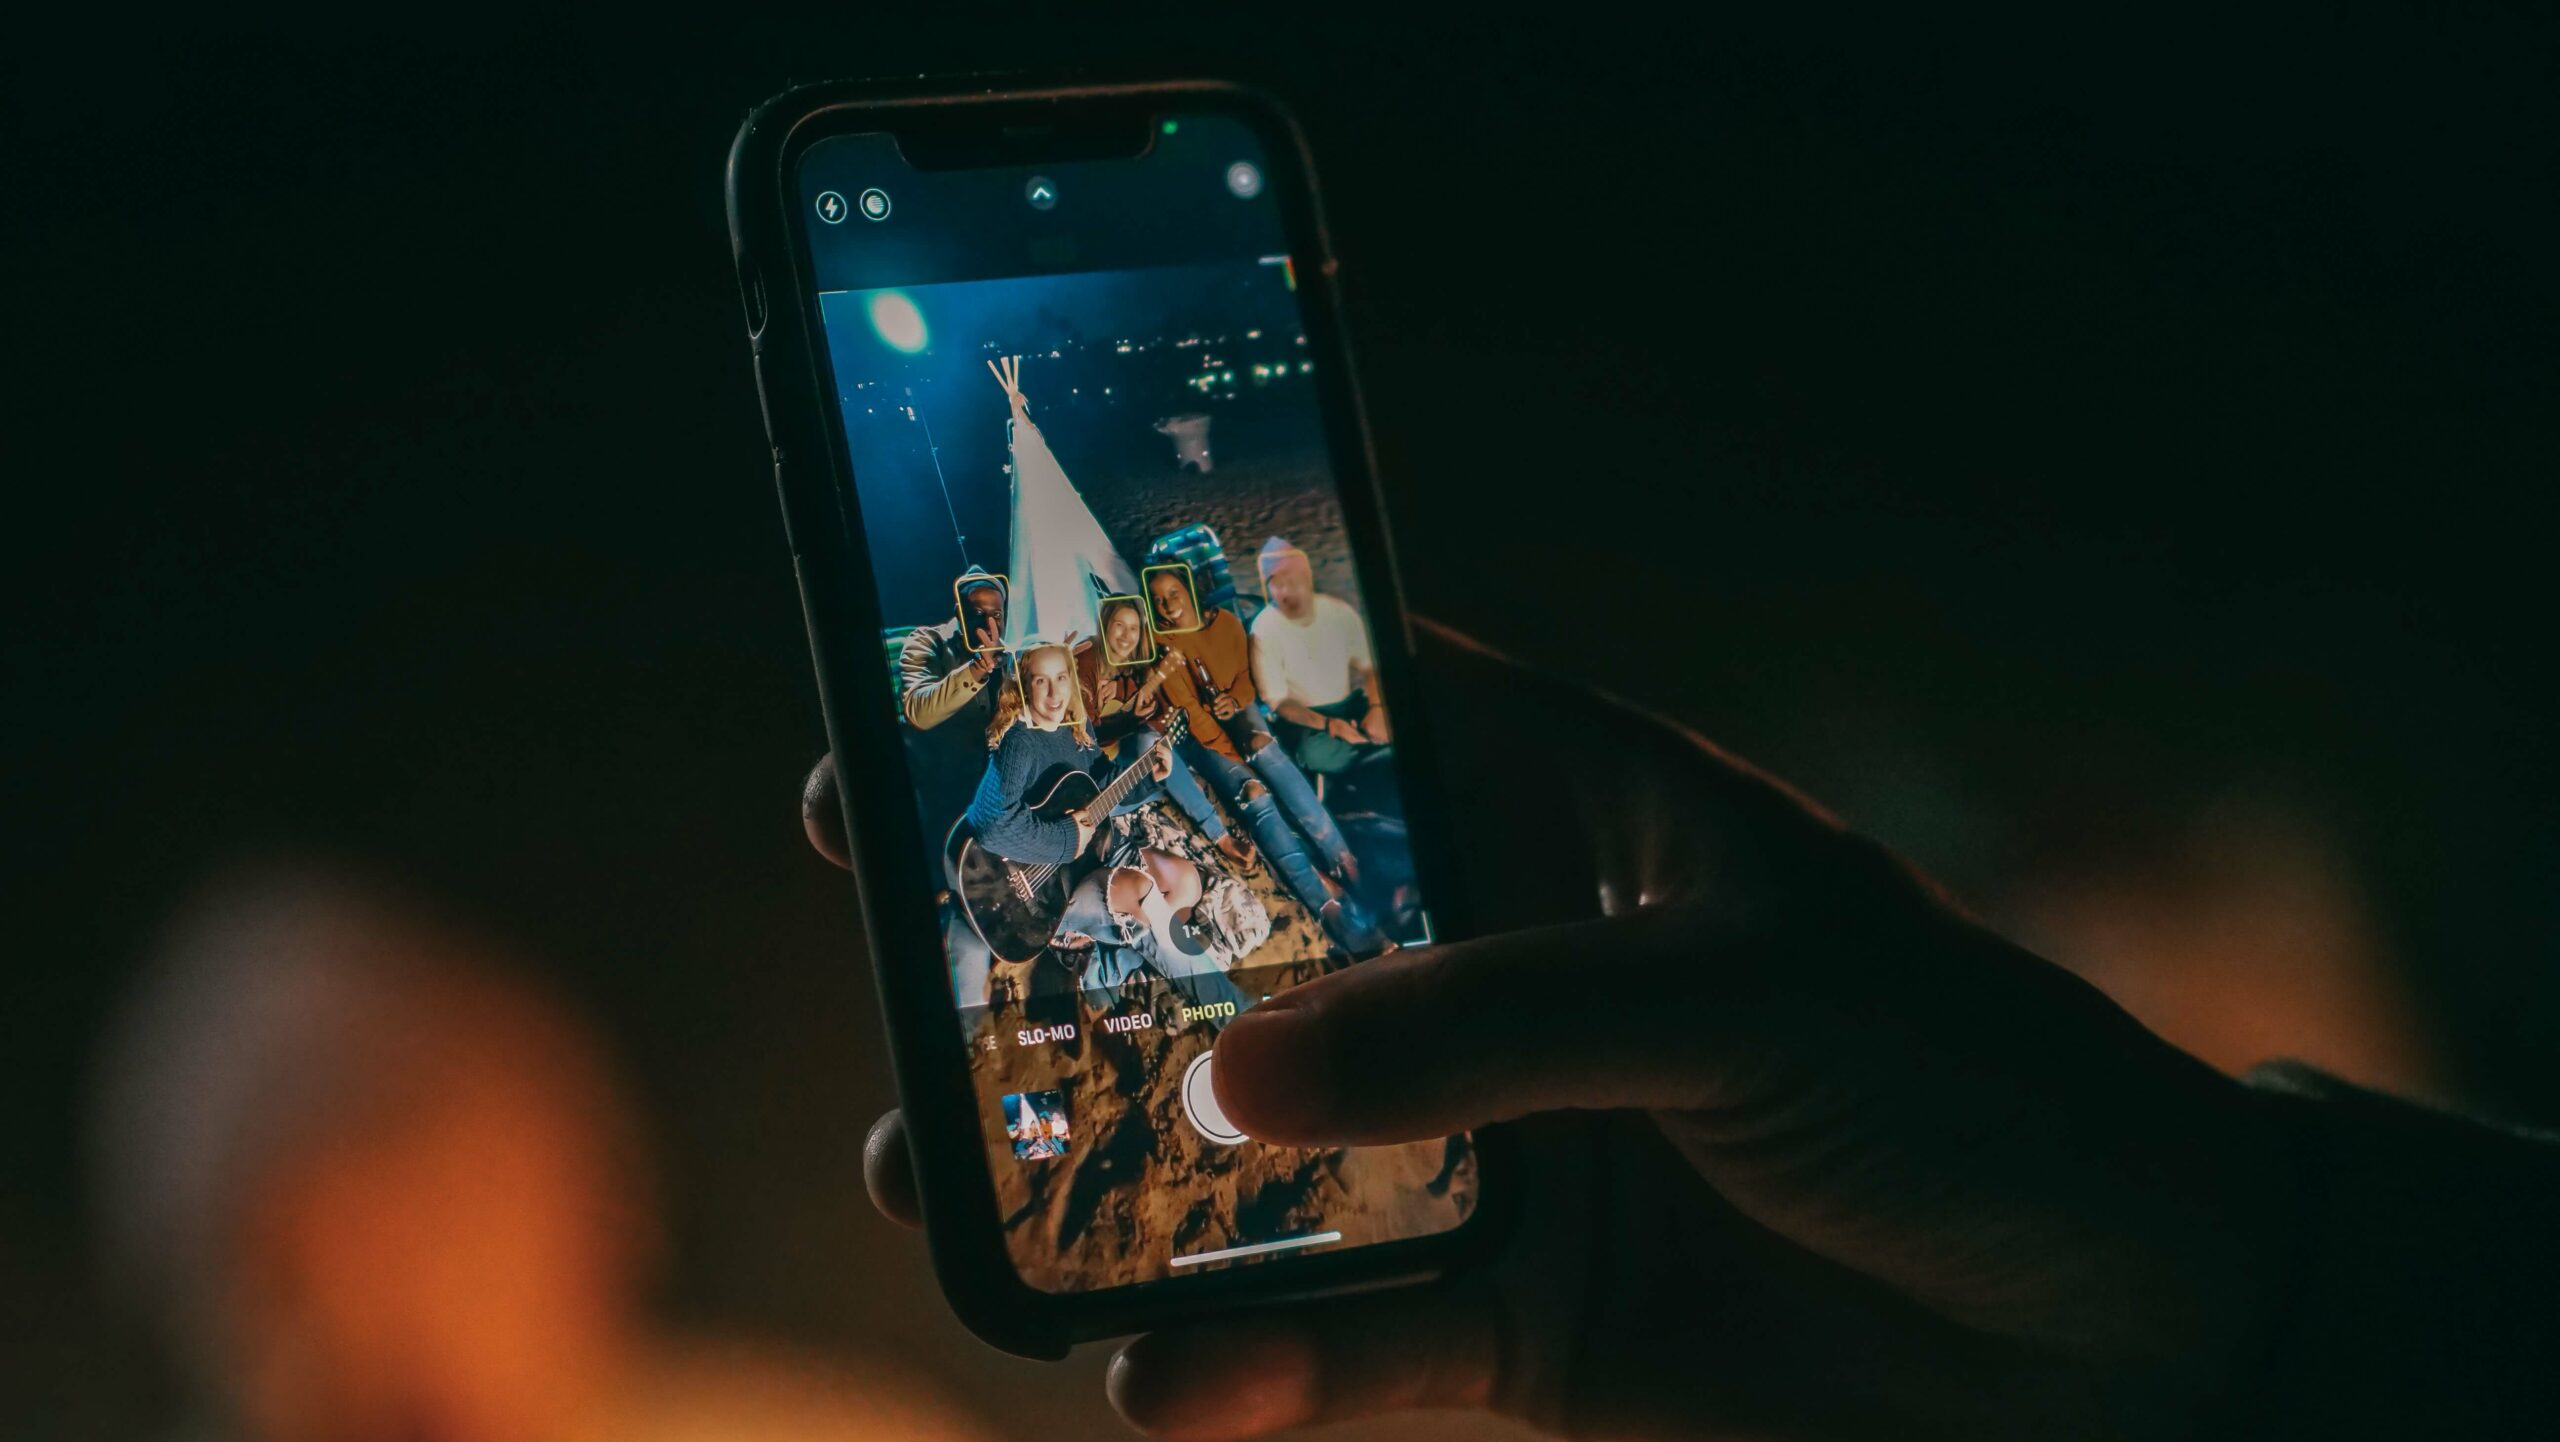 How to Take Good Instagram Photos On Your Phone: Tips & Ideas